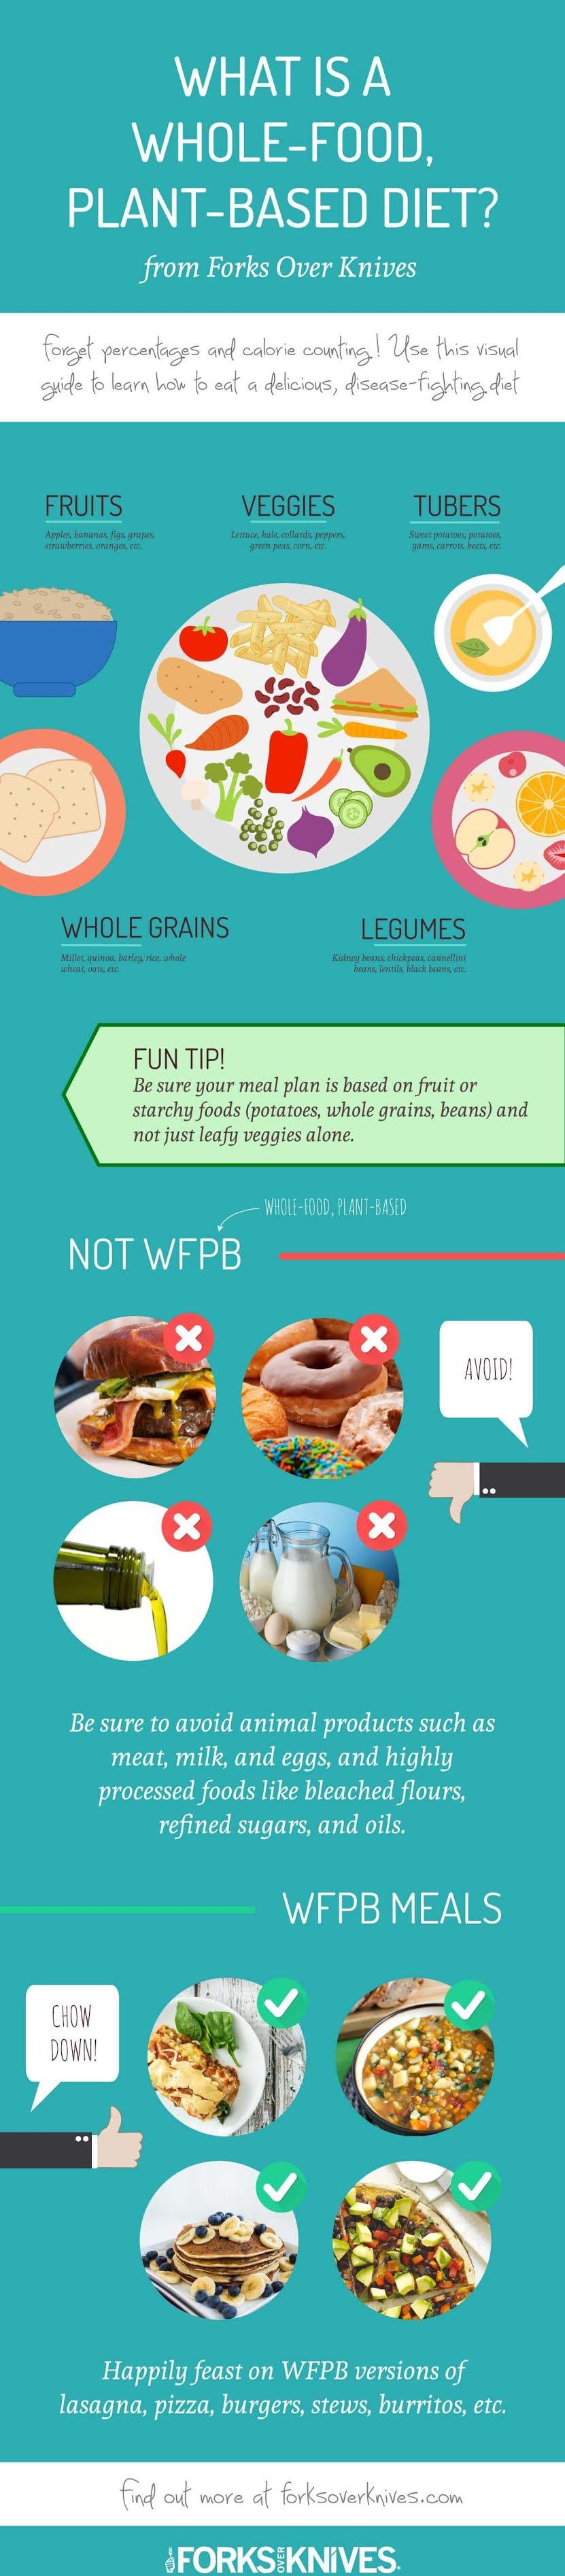 What is a Whole-Food, Plant-Based Diet? #infographic #Food #Diet #infographics #Diet Food #Plant Based Diet